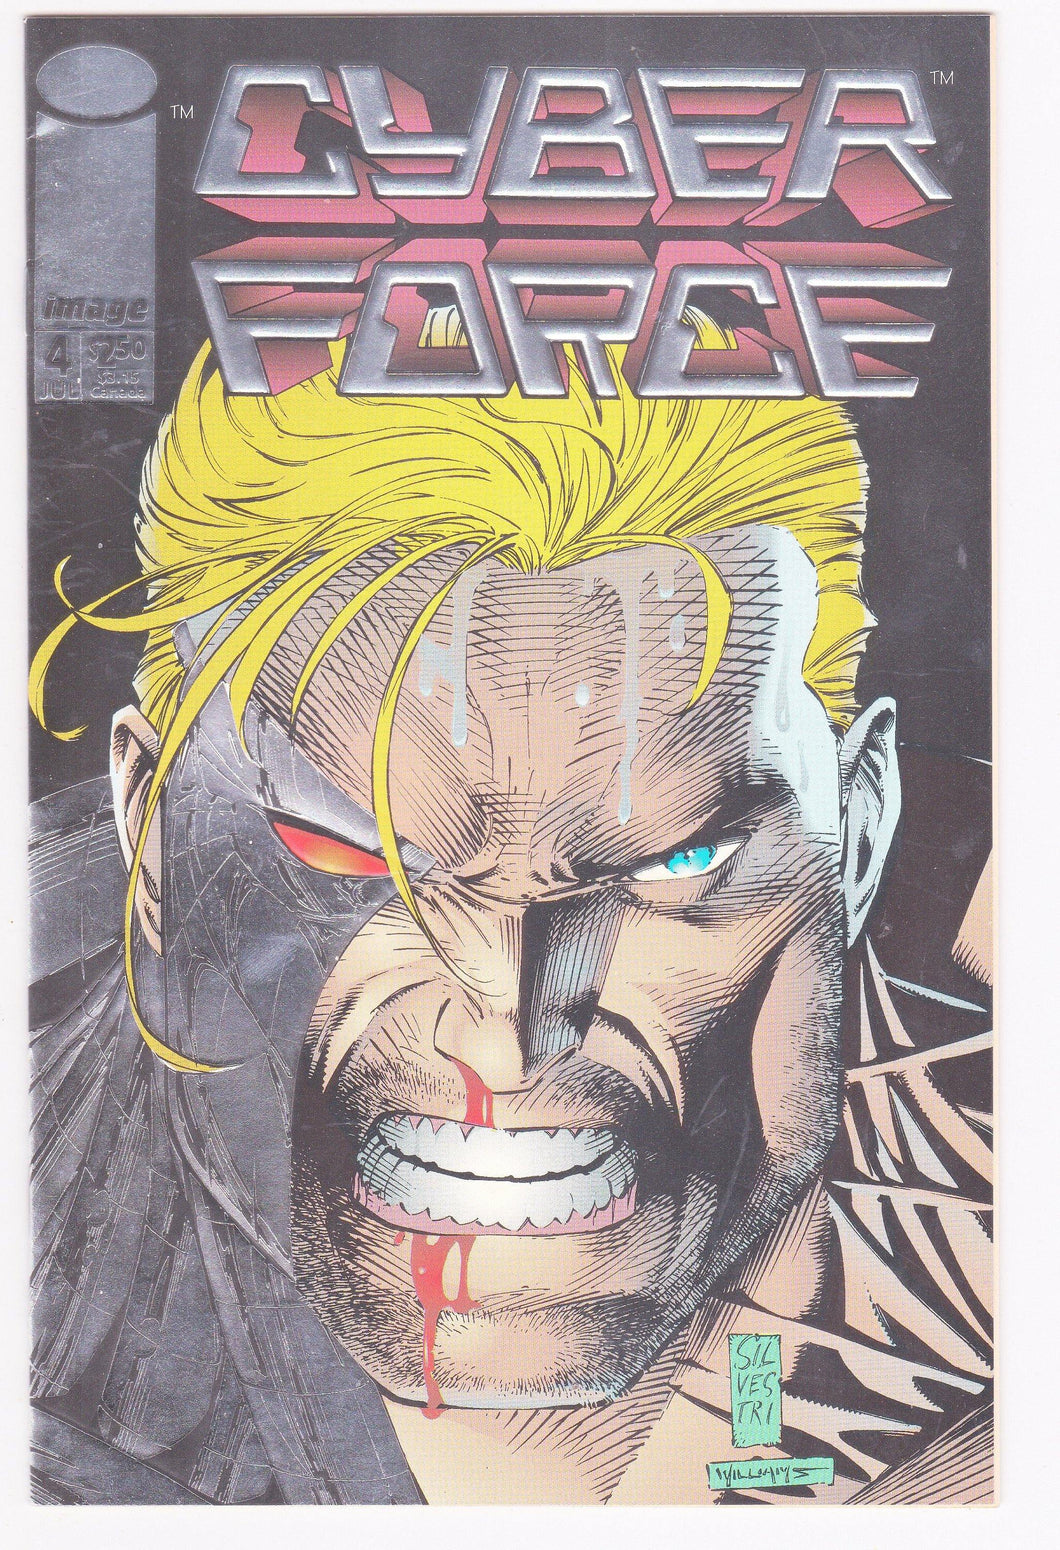 Cyberforce #4 Image Comics July 1993 First Printing Holo-Foil Cover